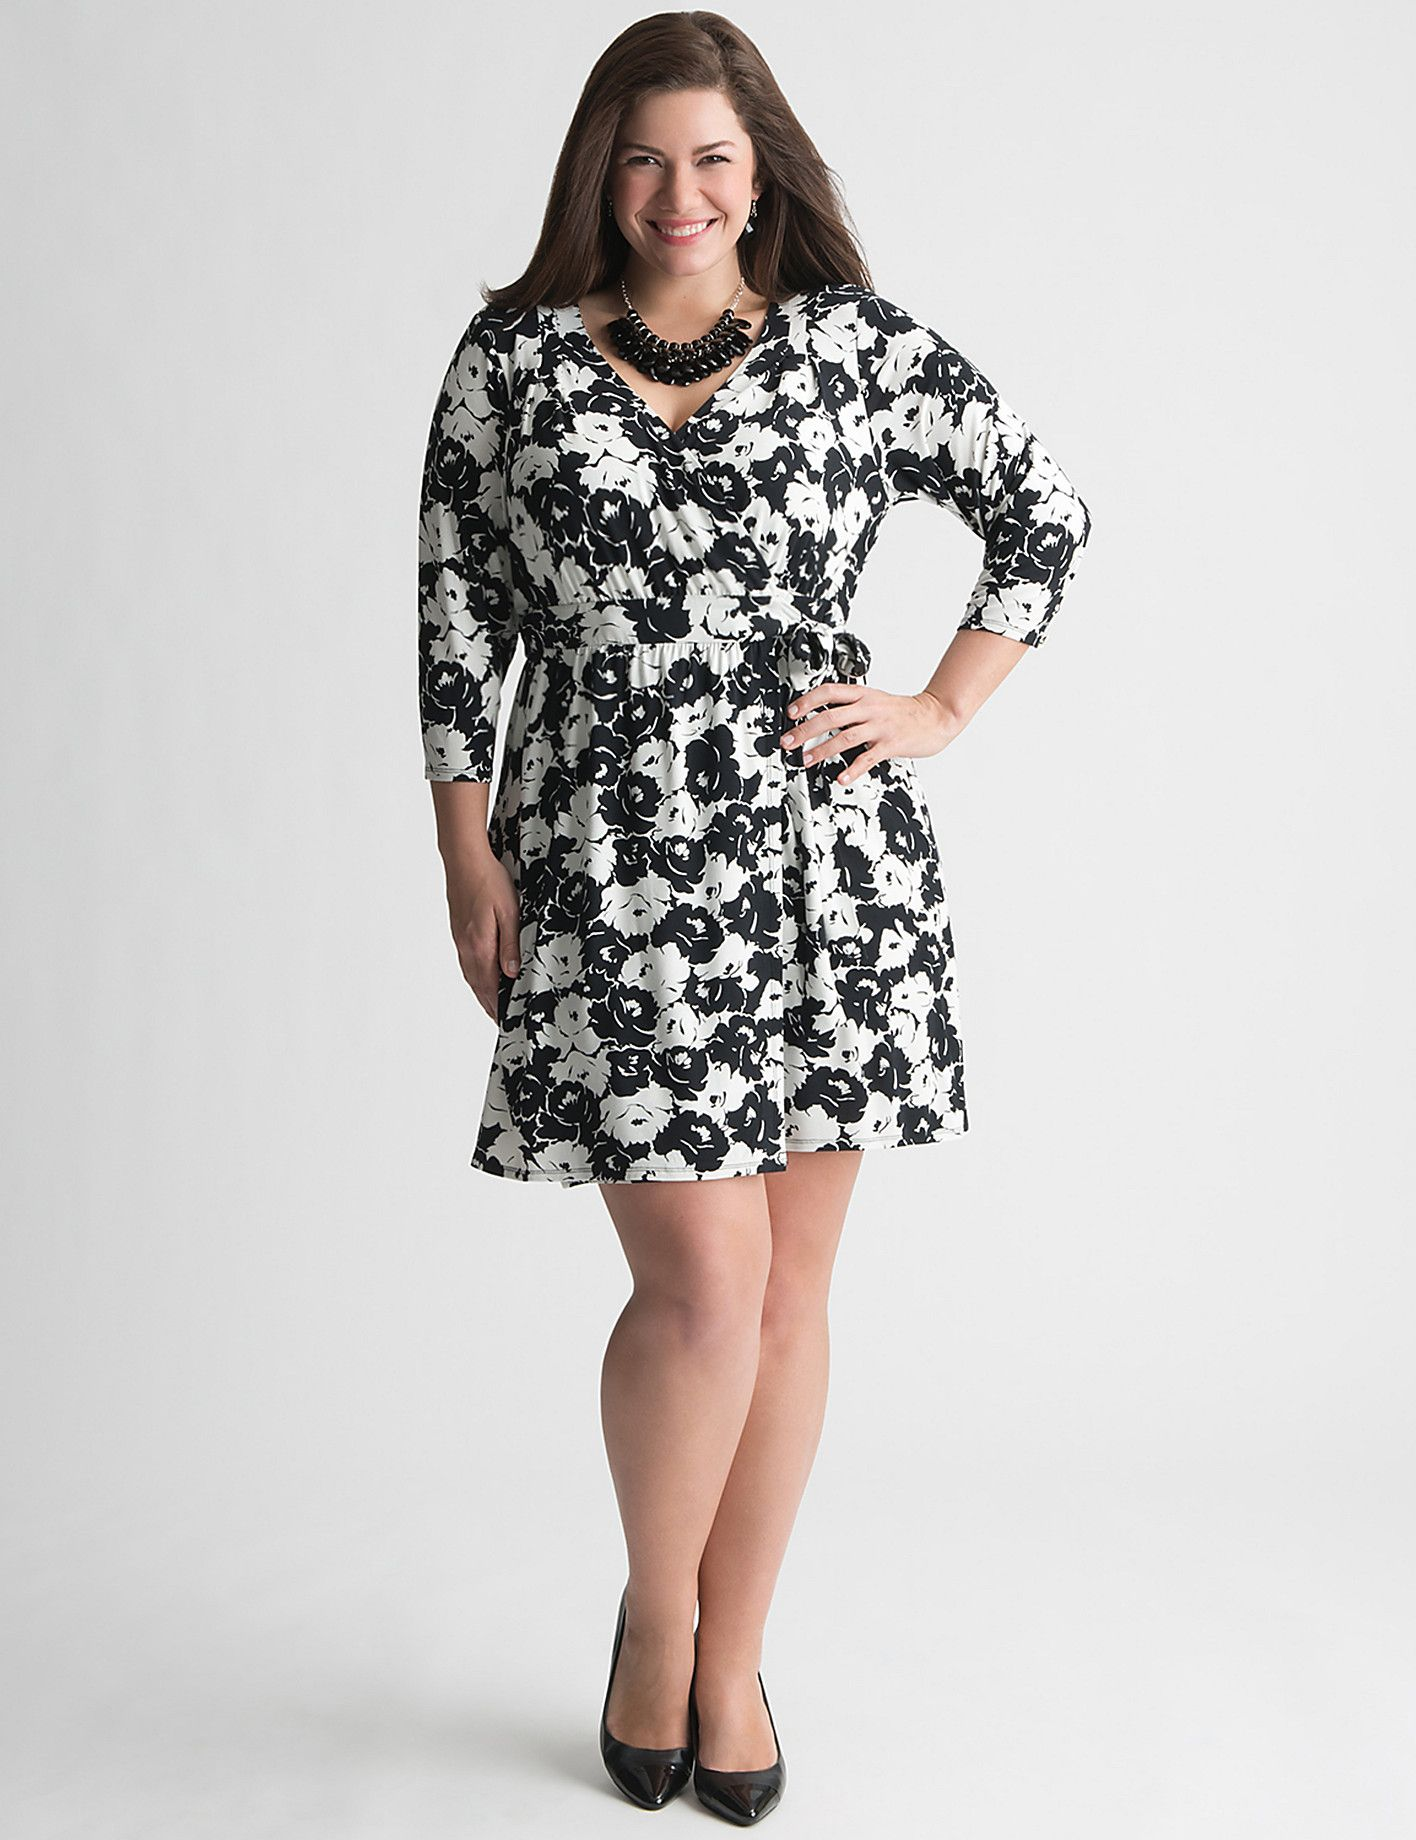 Full Figure Floral Wrap Dress by Lane Bryant | Sonsi | Full figure ...